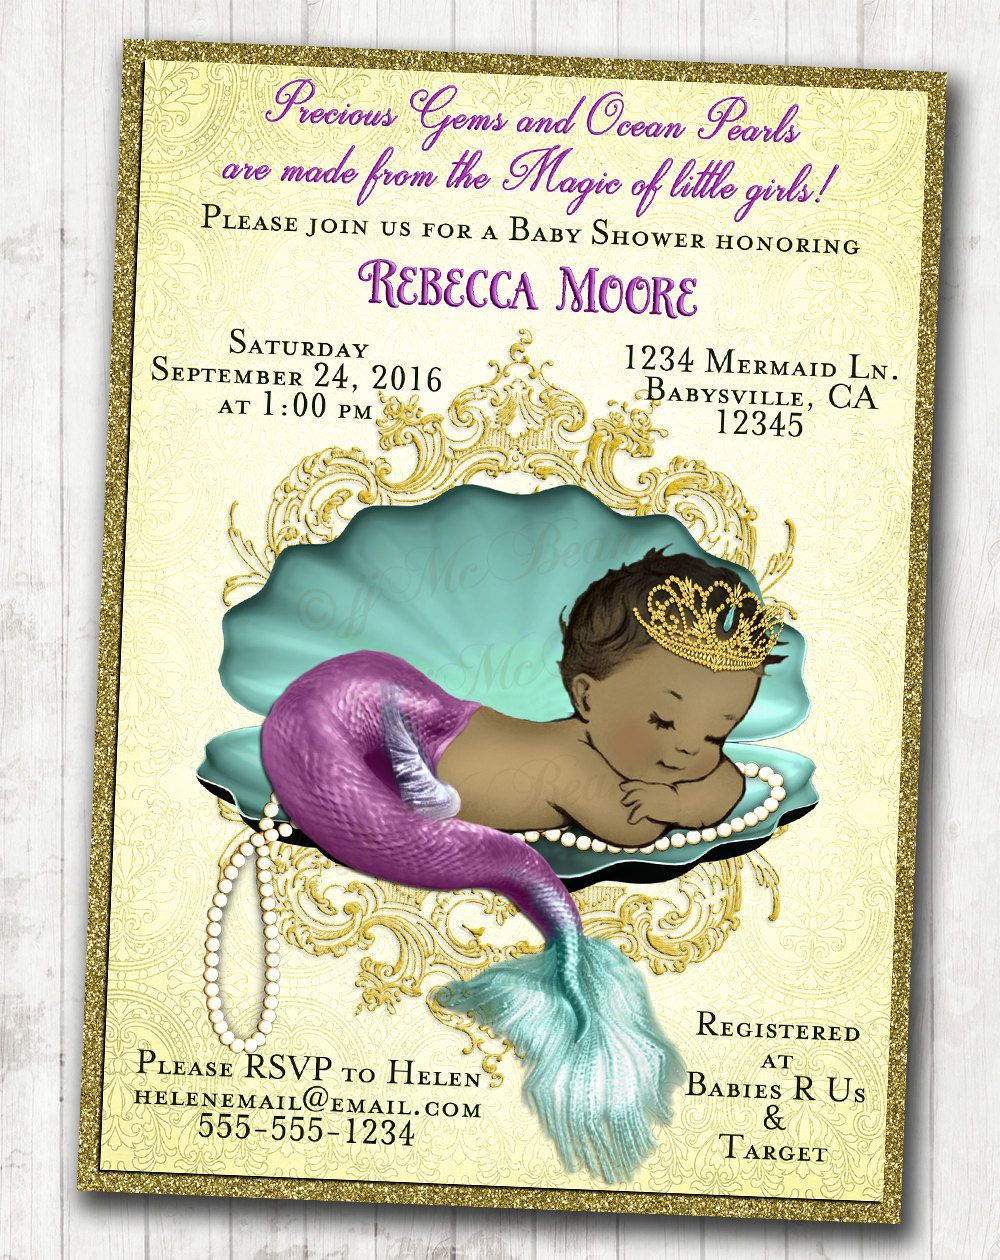 Mermaid baby shower invitation little mermaid baby shower under the african american mermaid baby shower invitation little mermaid baby shower under the sea aqua purple gold free shipping or diy printable by jjmcbean on filmwisefo